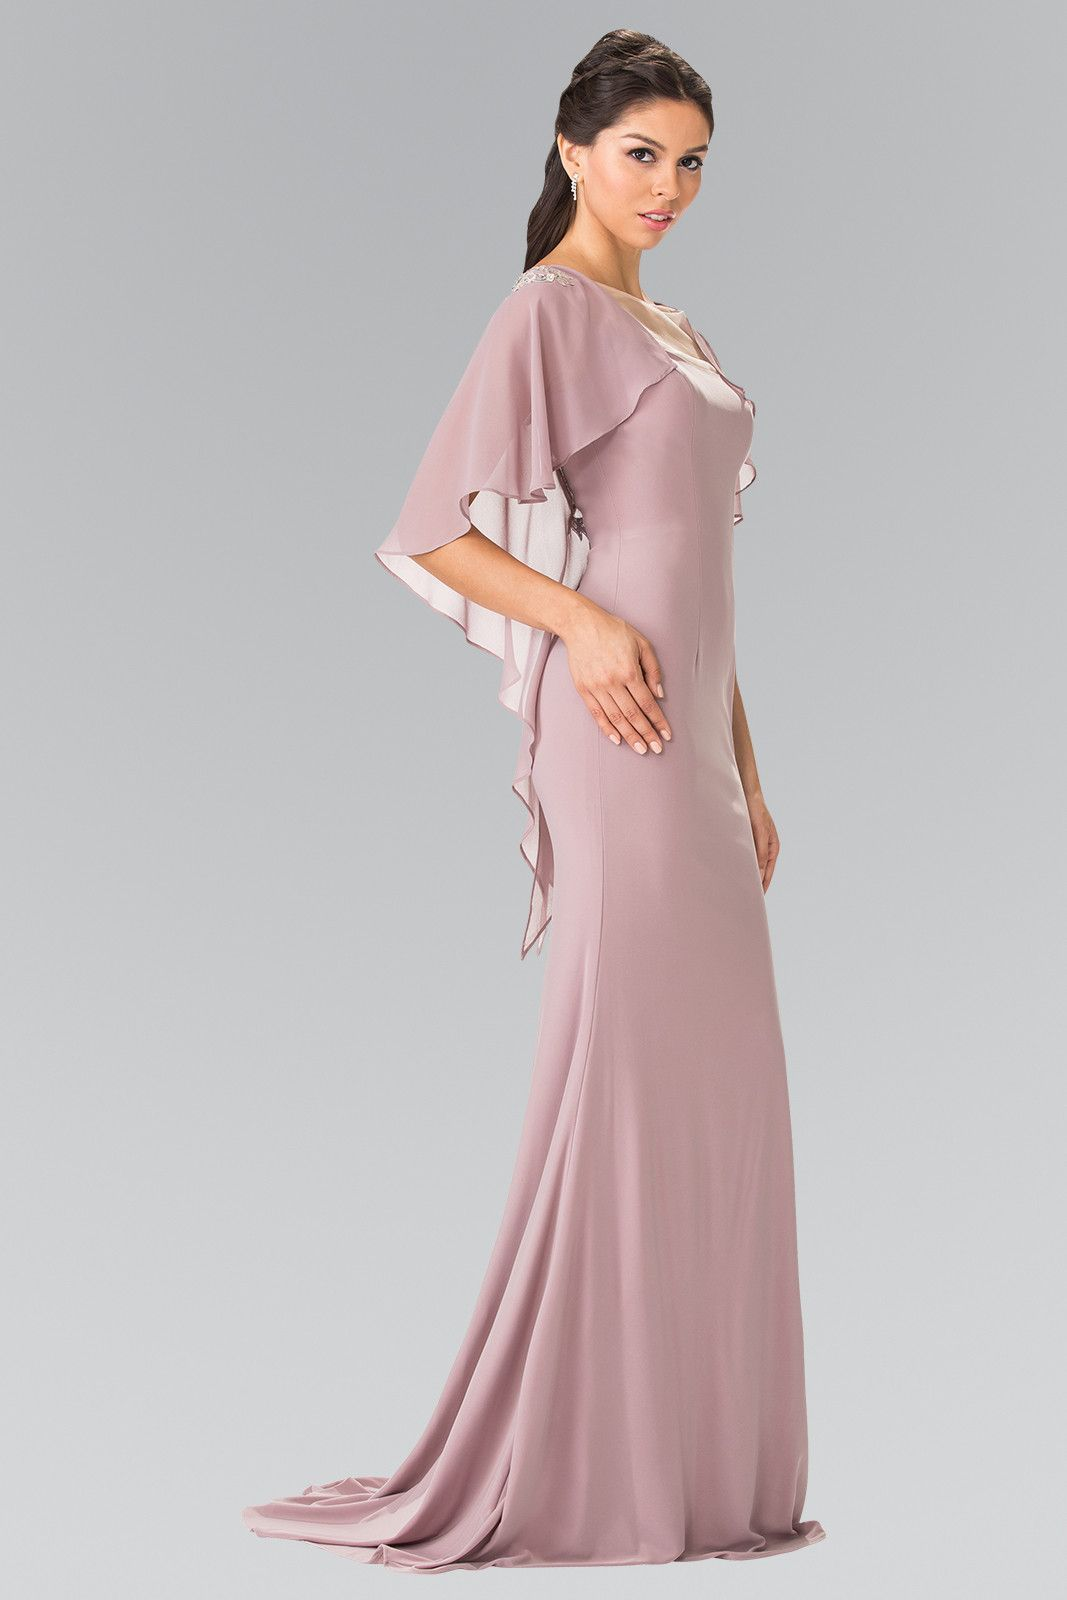 Long sleeveless dress with back caplet by elizabeth k gl products